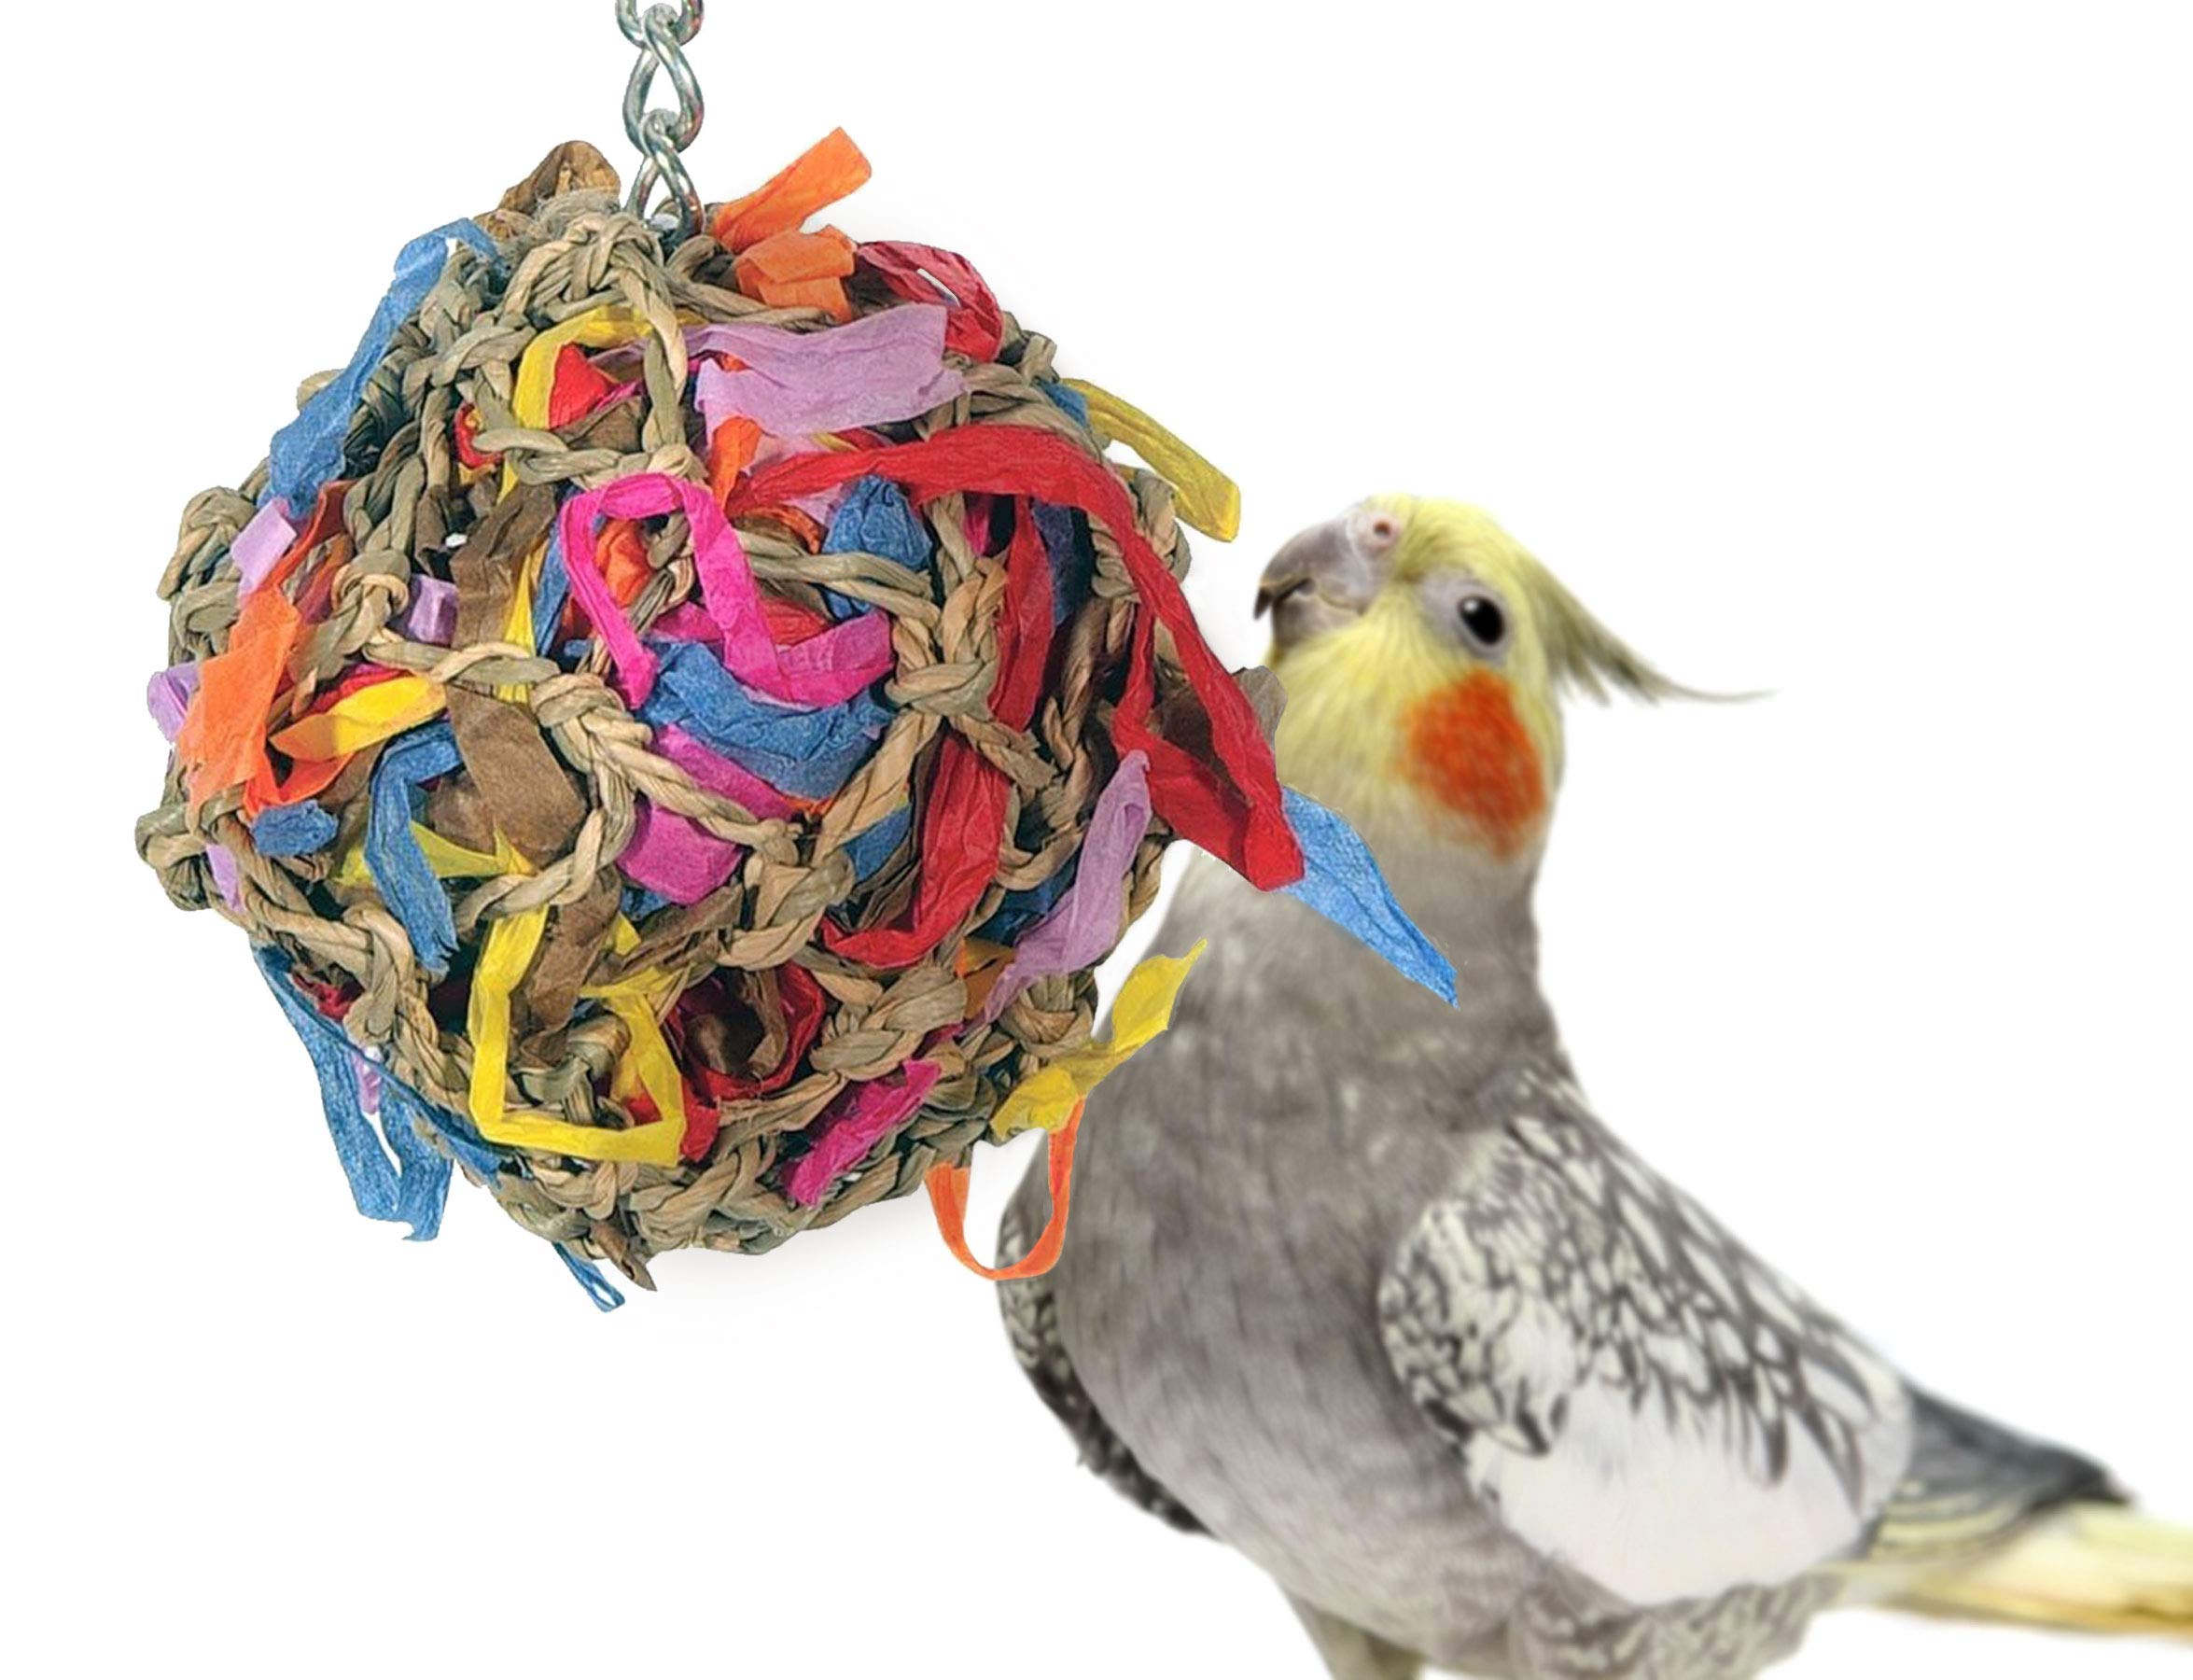 Sweet Feet and Beak Super Shredder Ball - Bird Cage Accessories to Keep Your Bird Busy Foraging for Hidden Treasures - Non-Toxic, Easy to Install Bird Foraging Toys, Bird Treats, Parrot Toys